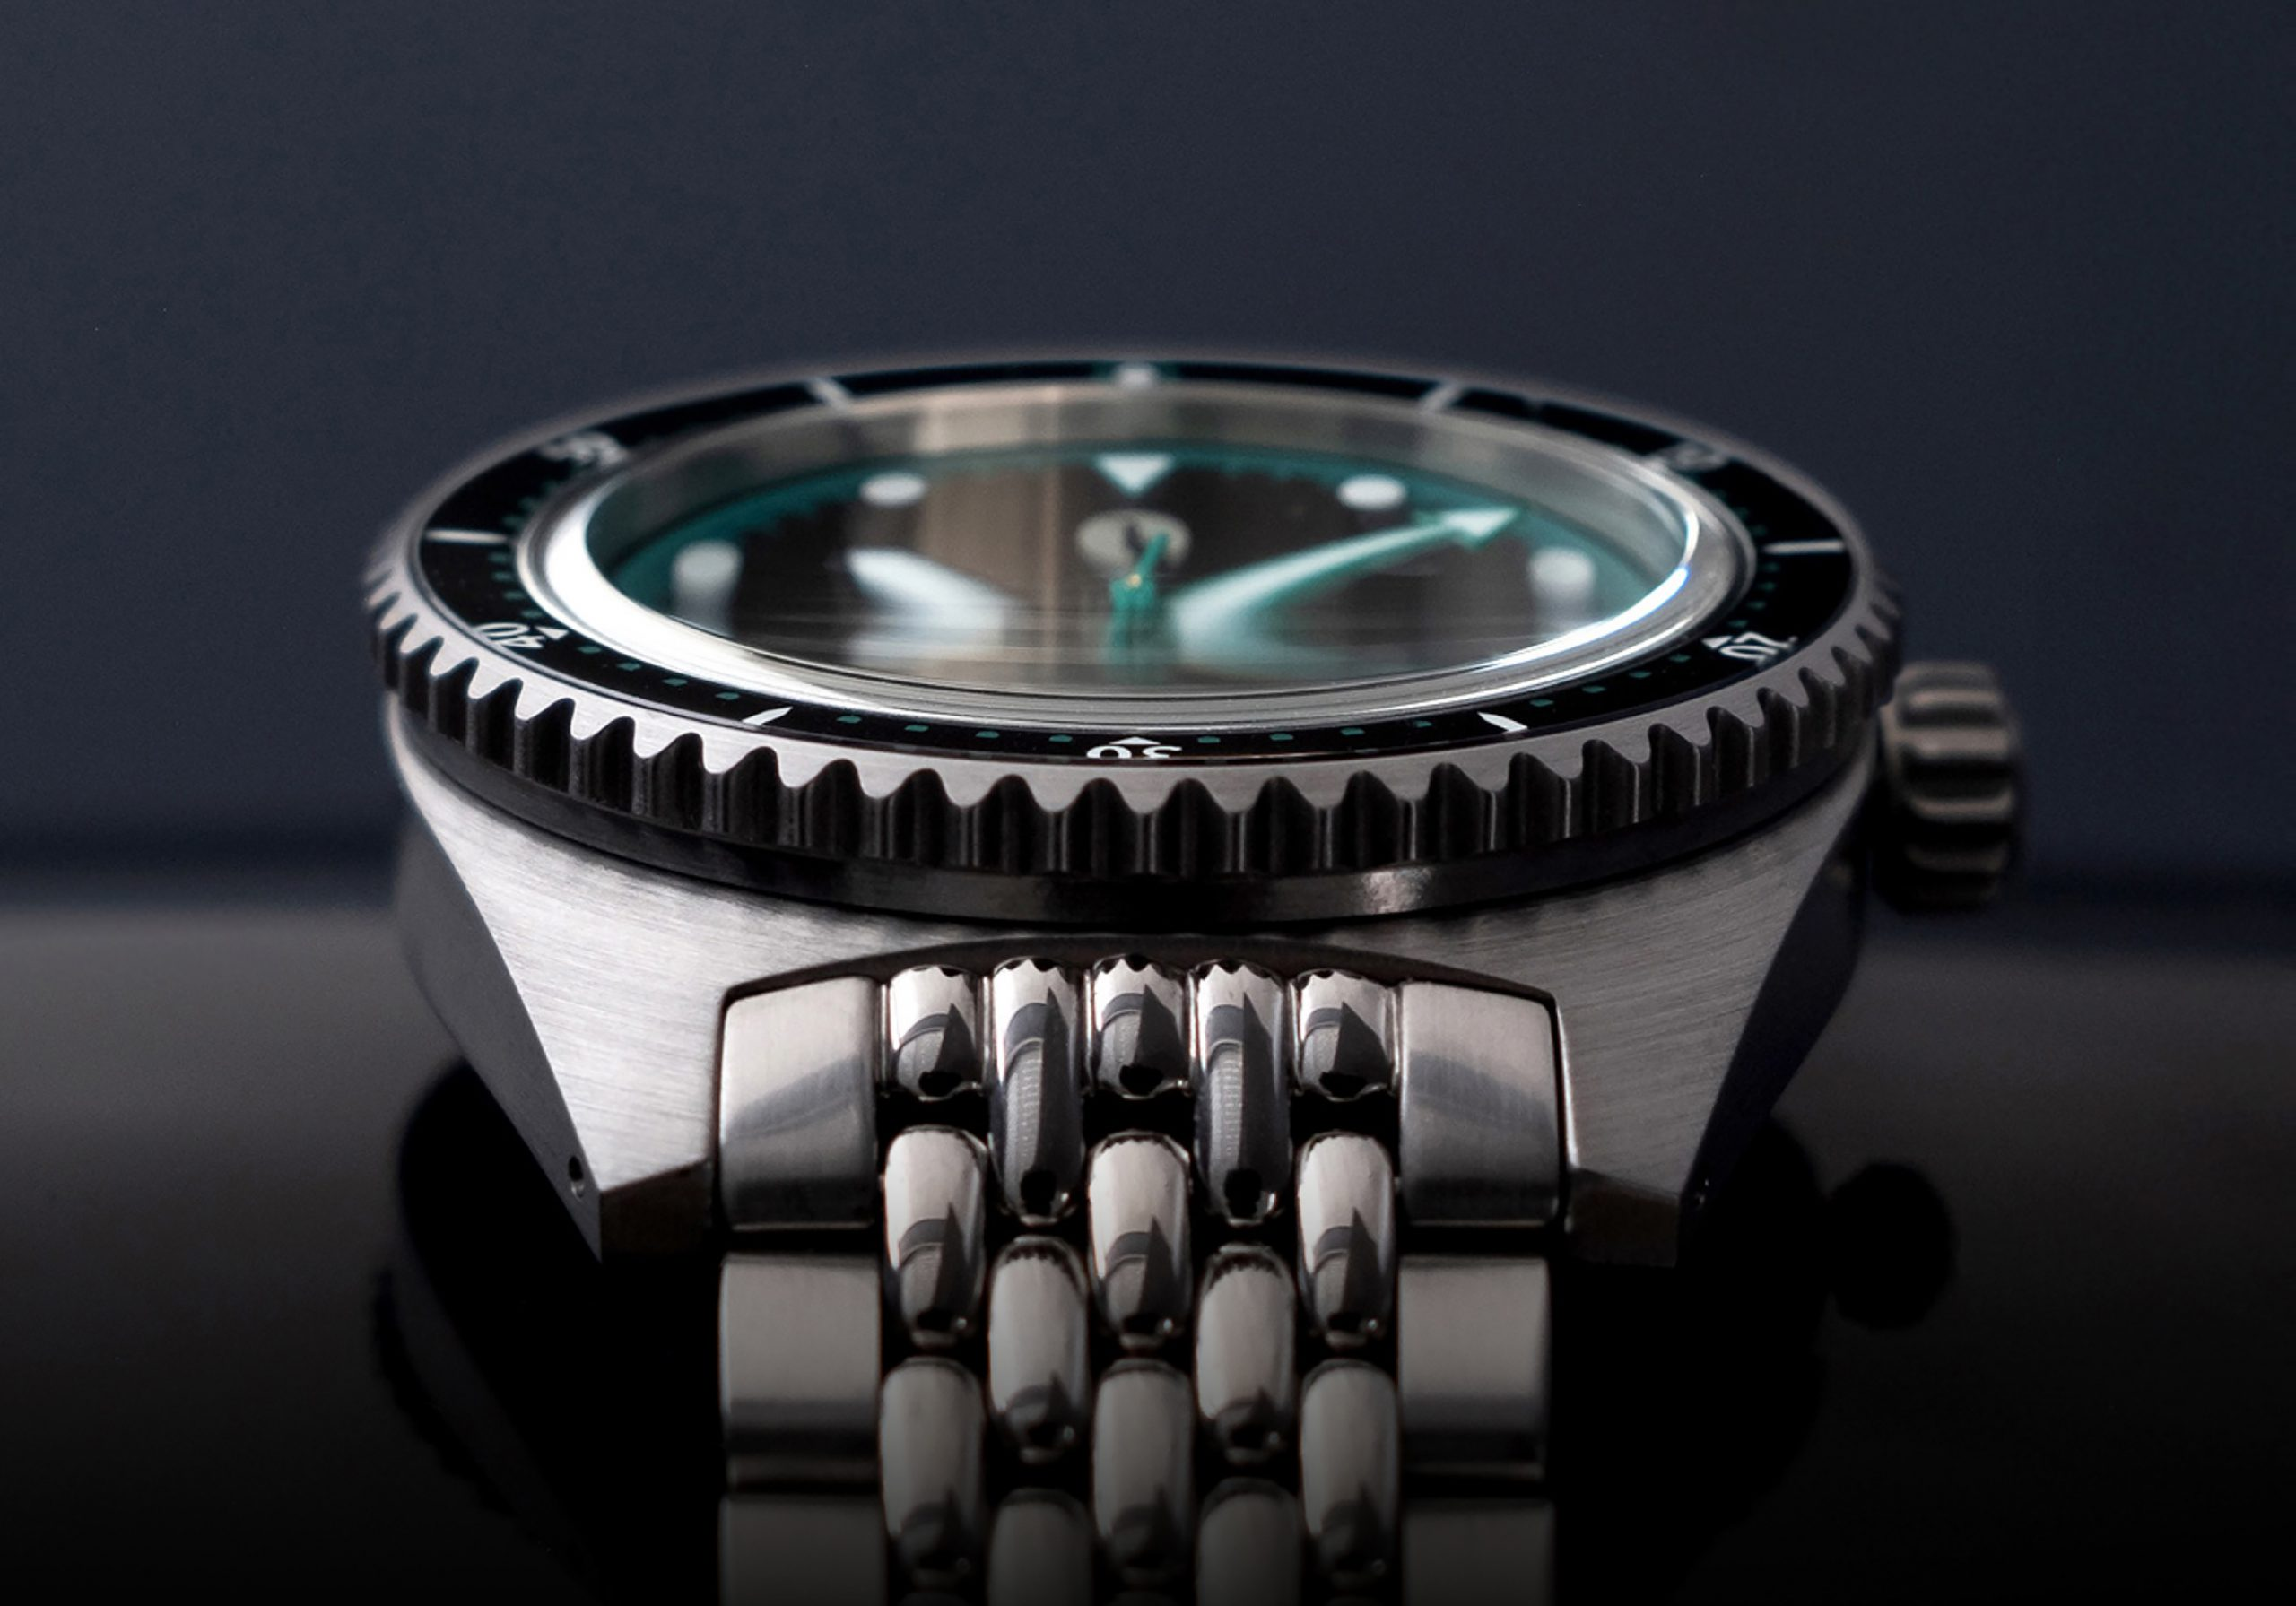 MICRO MONDAYS: The Albany Watches AMA Diver – a mother of pearl dial diver, with a $300USD price tag